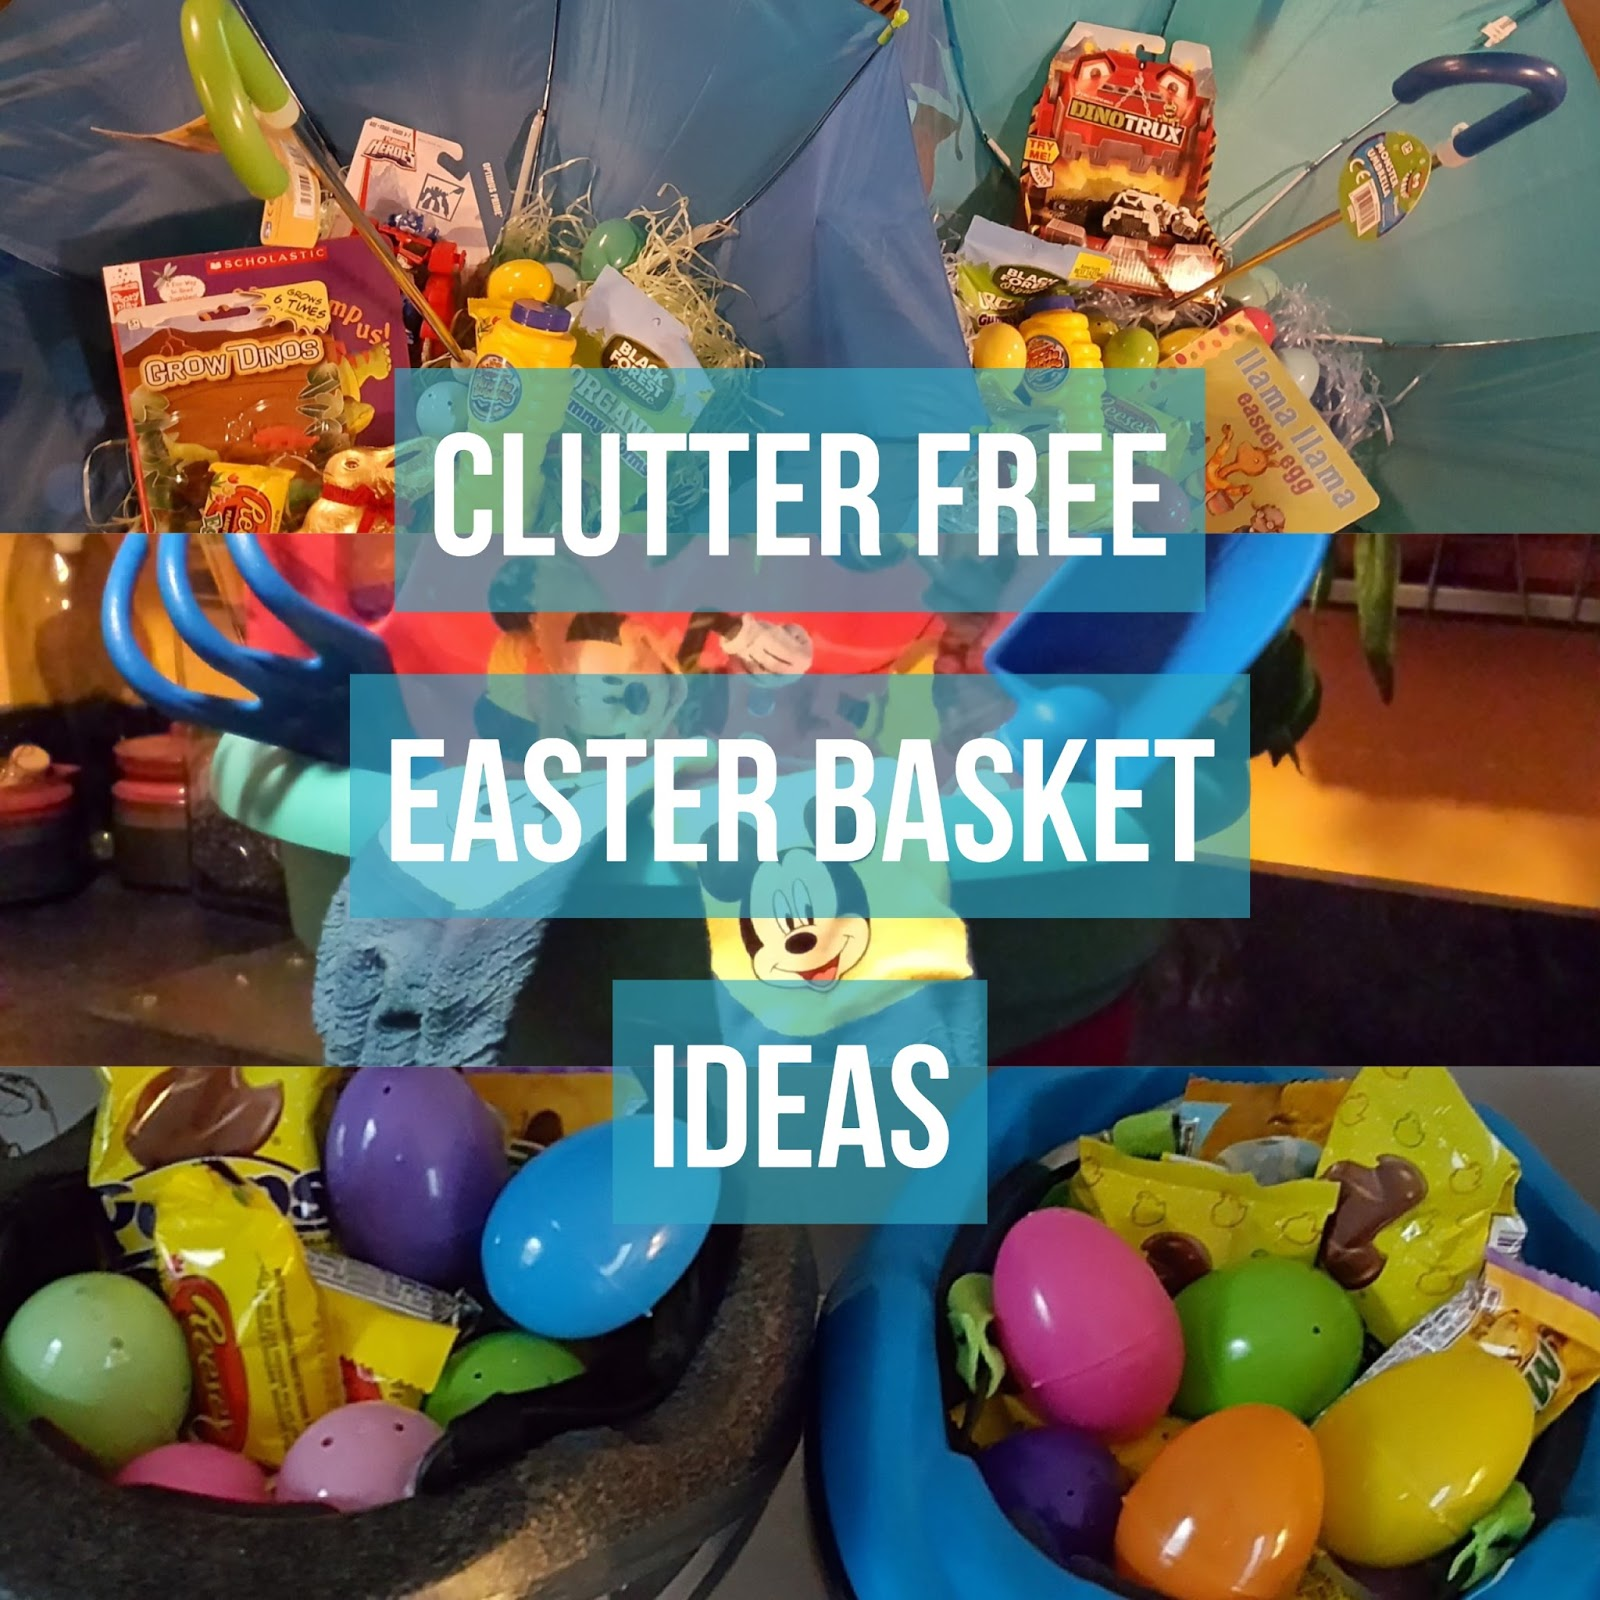 Simple solutions organizing clutter free easter basket ideas clutter free easter basket ideas negle Gallery